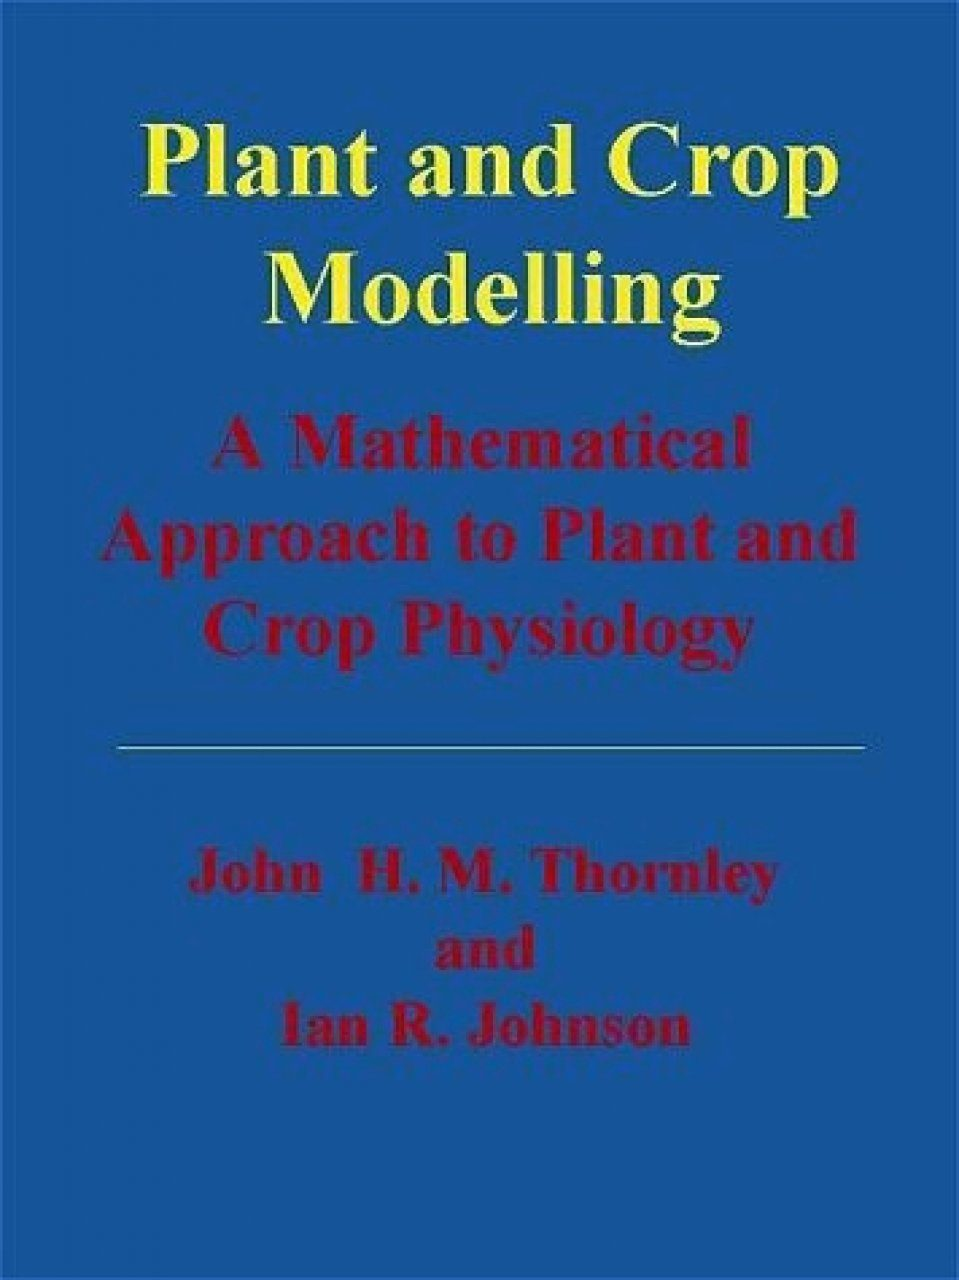 Plant and Crop Modelling